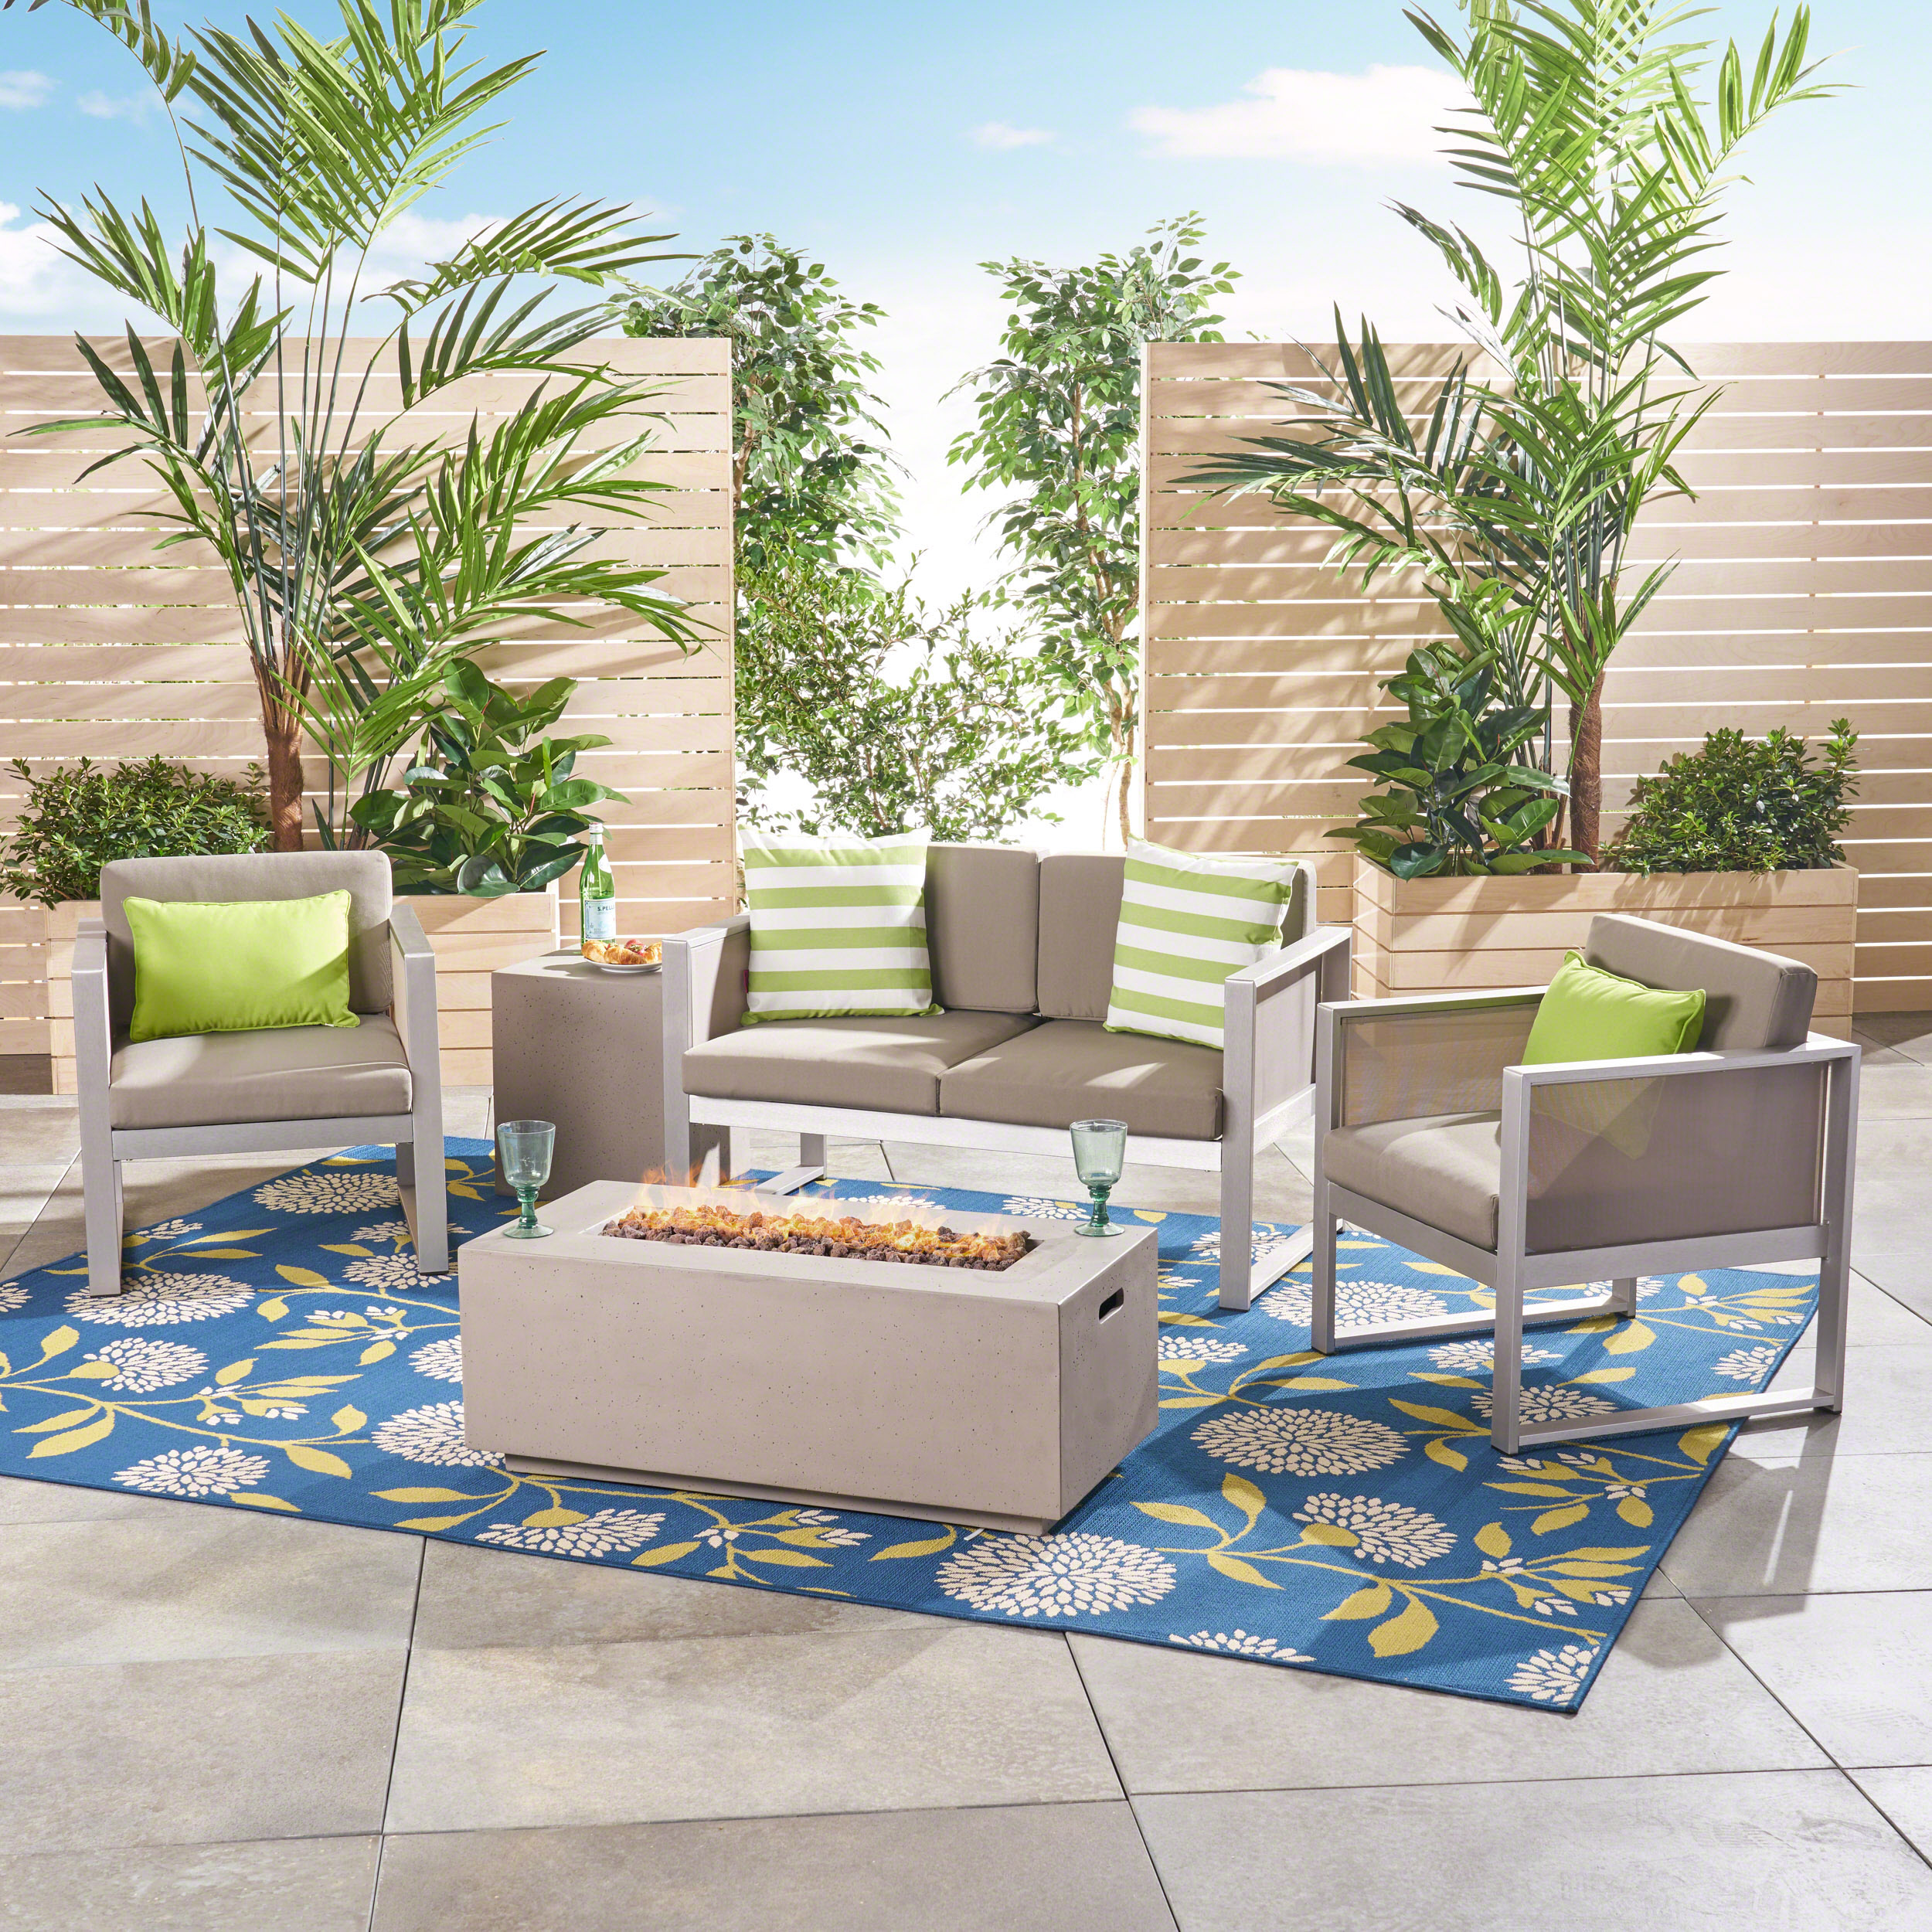 Saanvi Outdoor 5 Piece Aluminum Chat Set with Fire Pit and Tank Holder, Silver, Gray, Light Gray